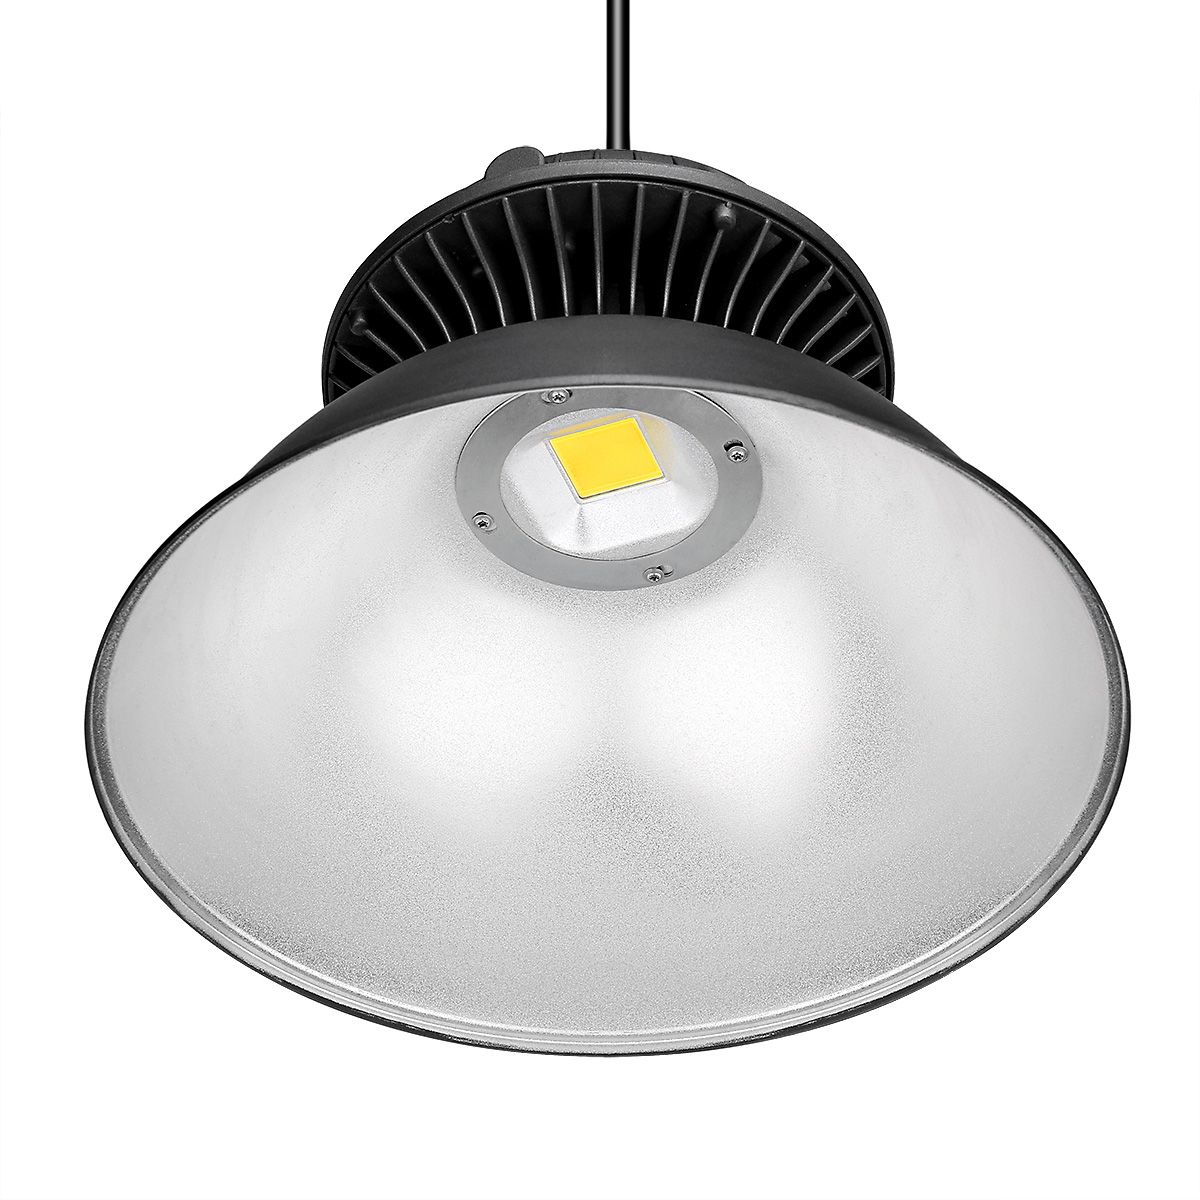 Lighting Ever Top Quality Led Fixtures 55w Industrial High Bay Led Lighting Fixtures 4800lm 150w